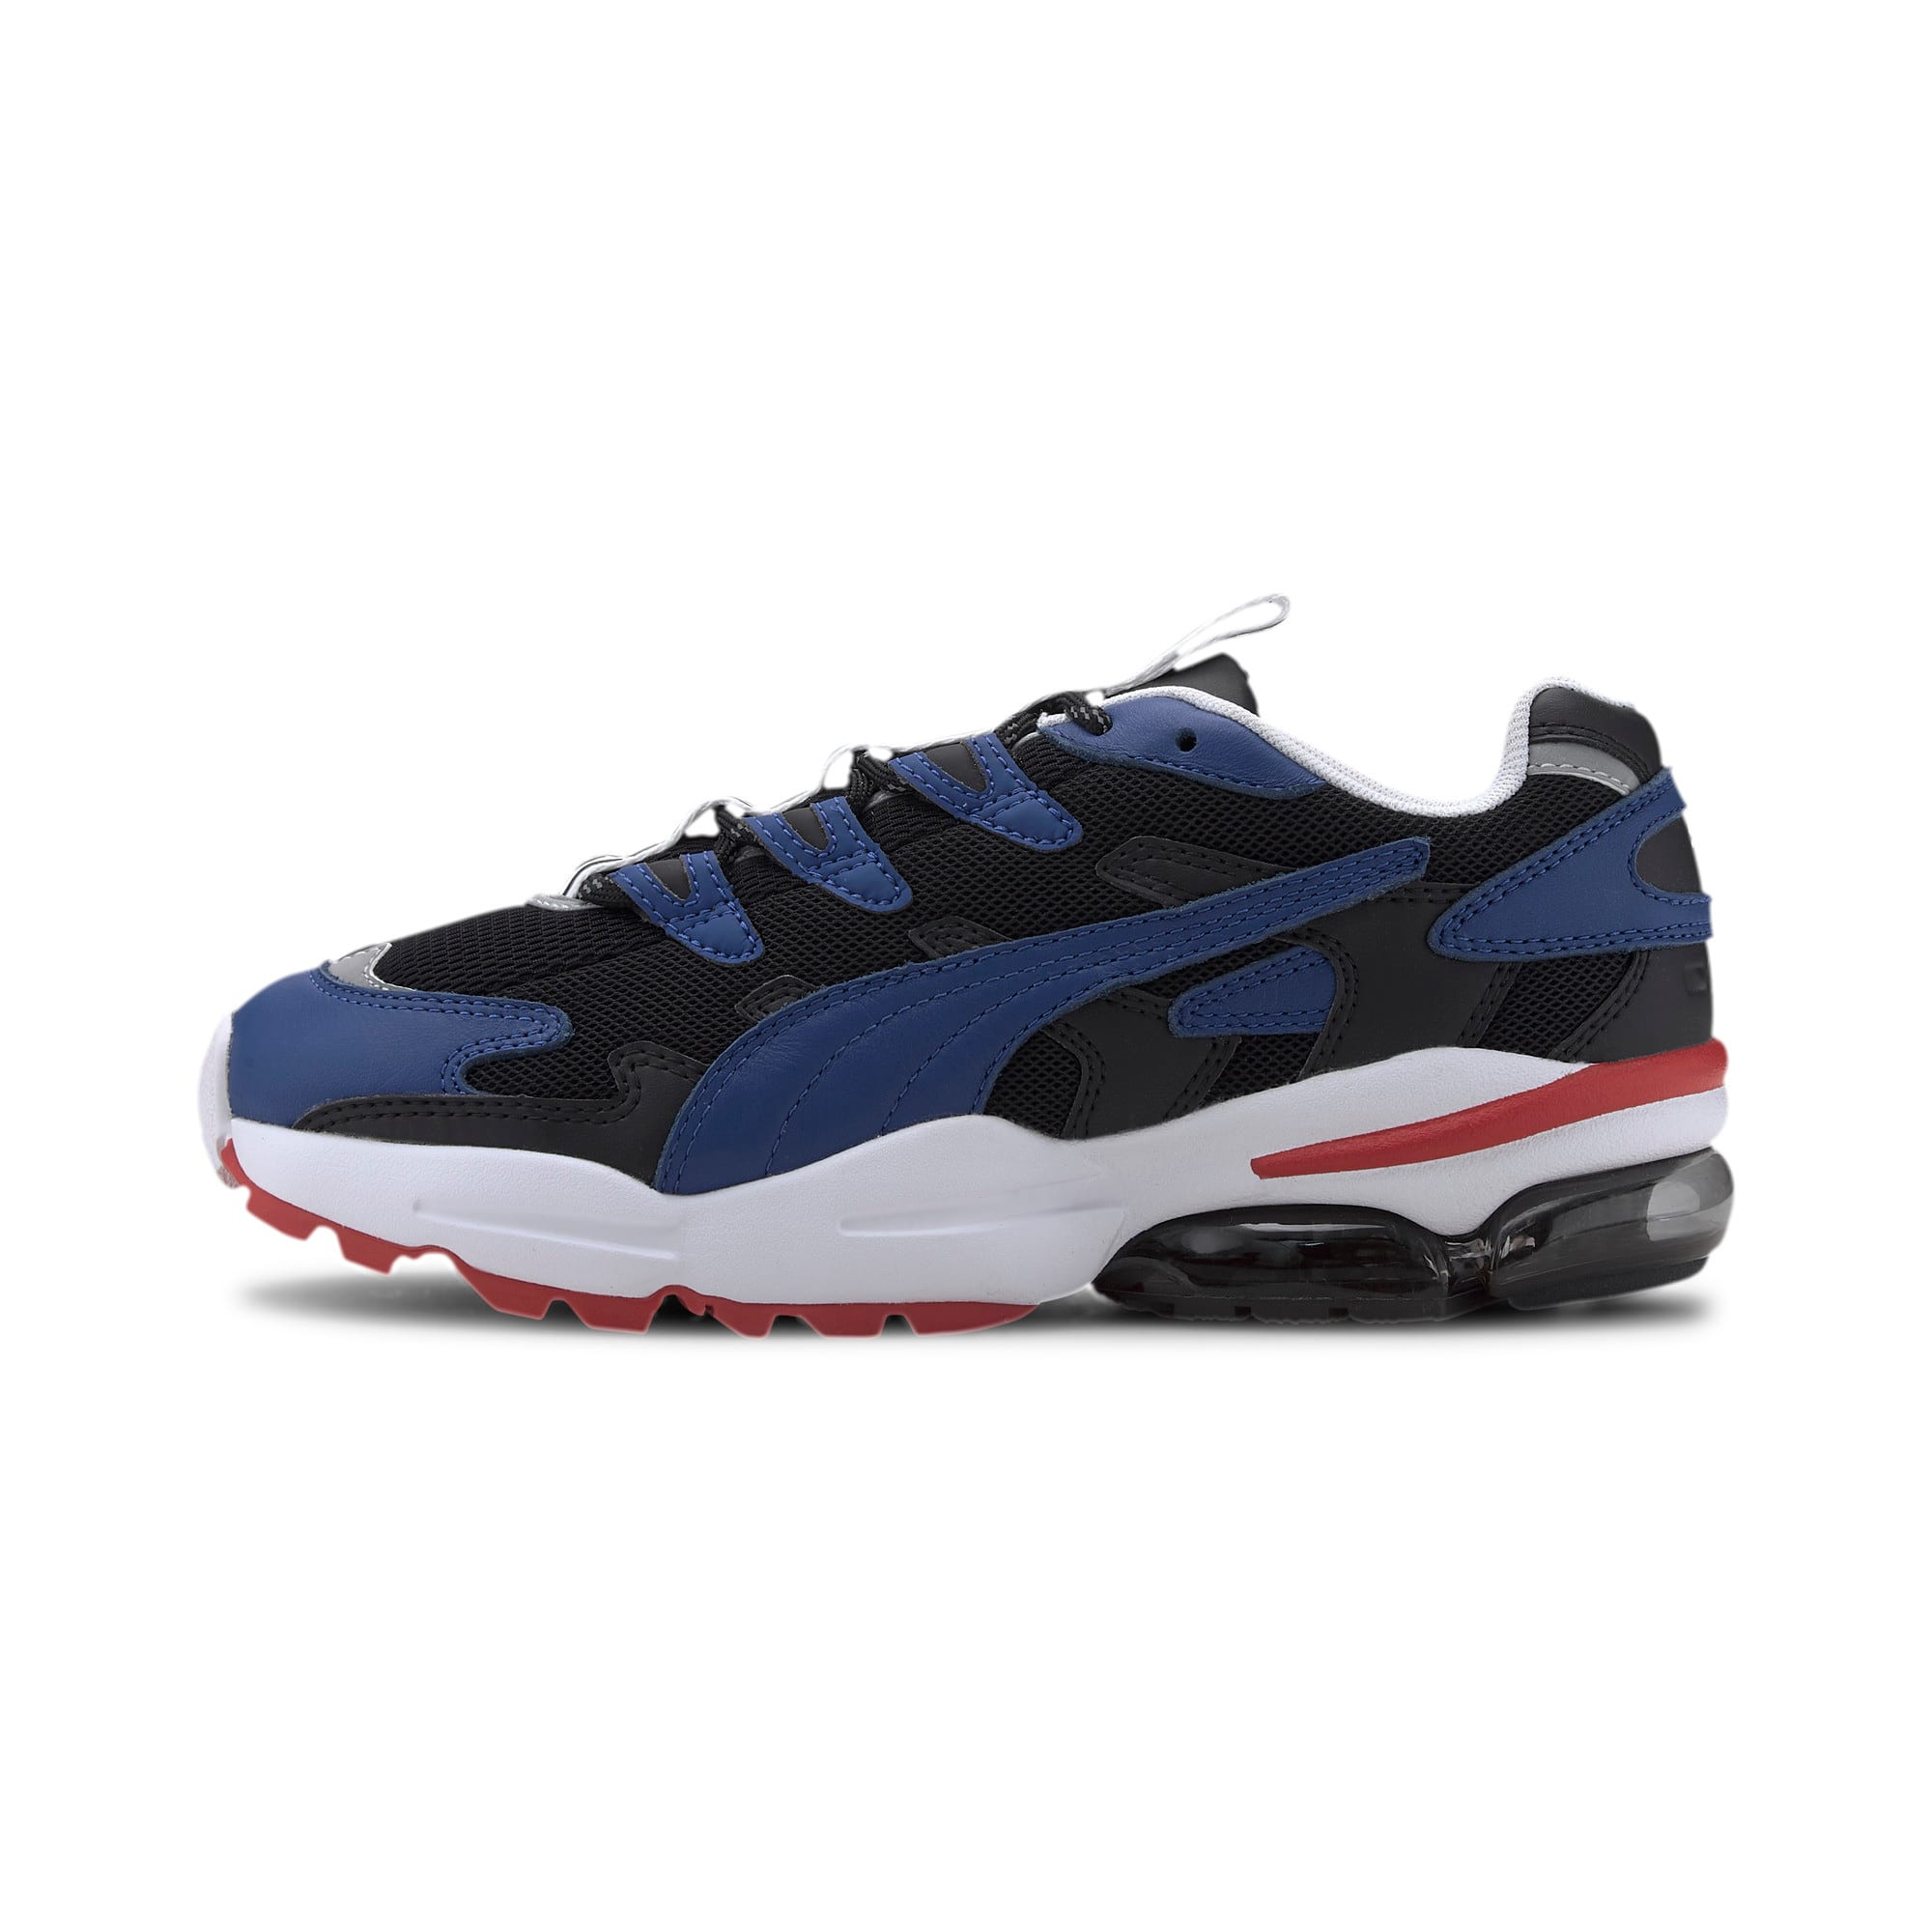 Thumbnail 6 of PUMA x KARL LAGERFELD CELL Alien Trainers, Puma Black-TRUE BLUE, medium